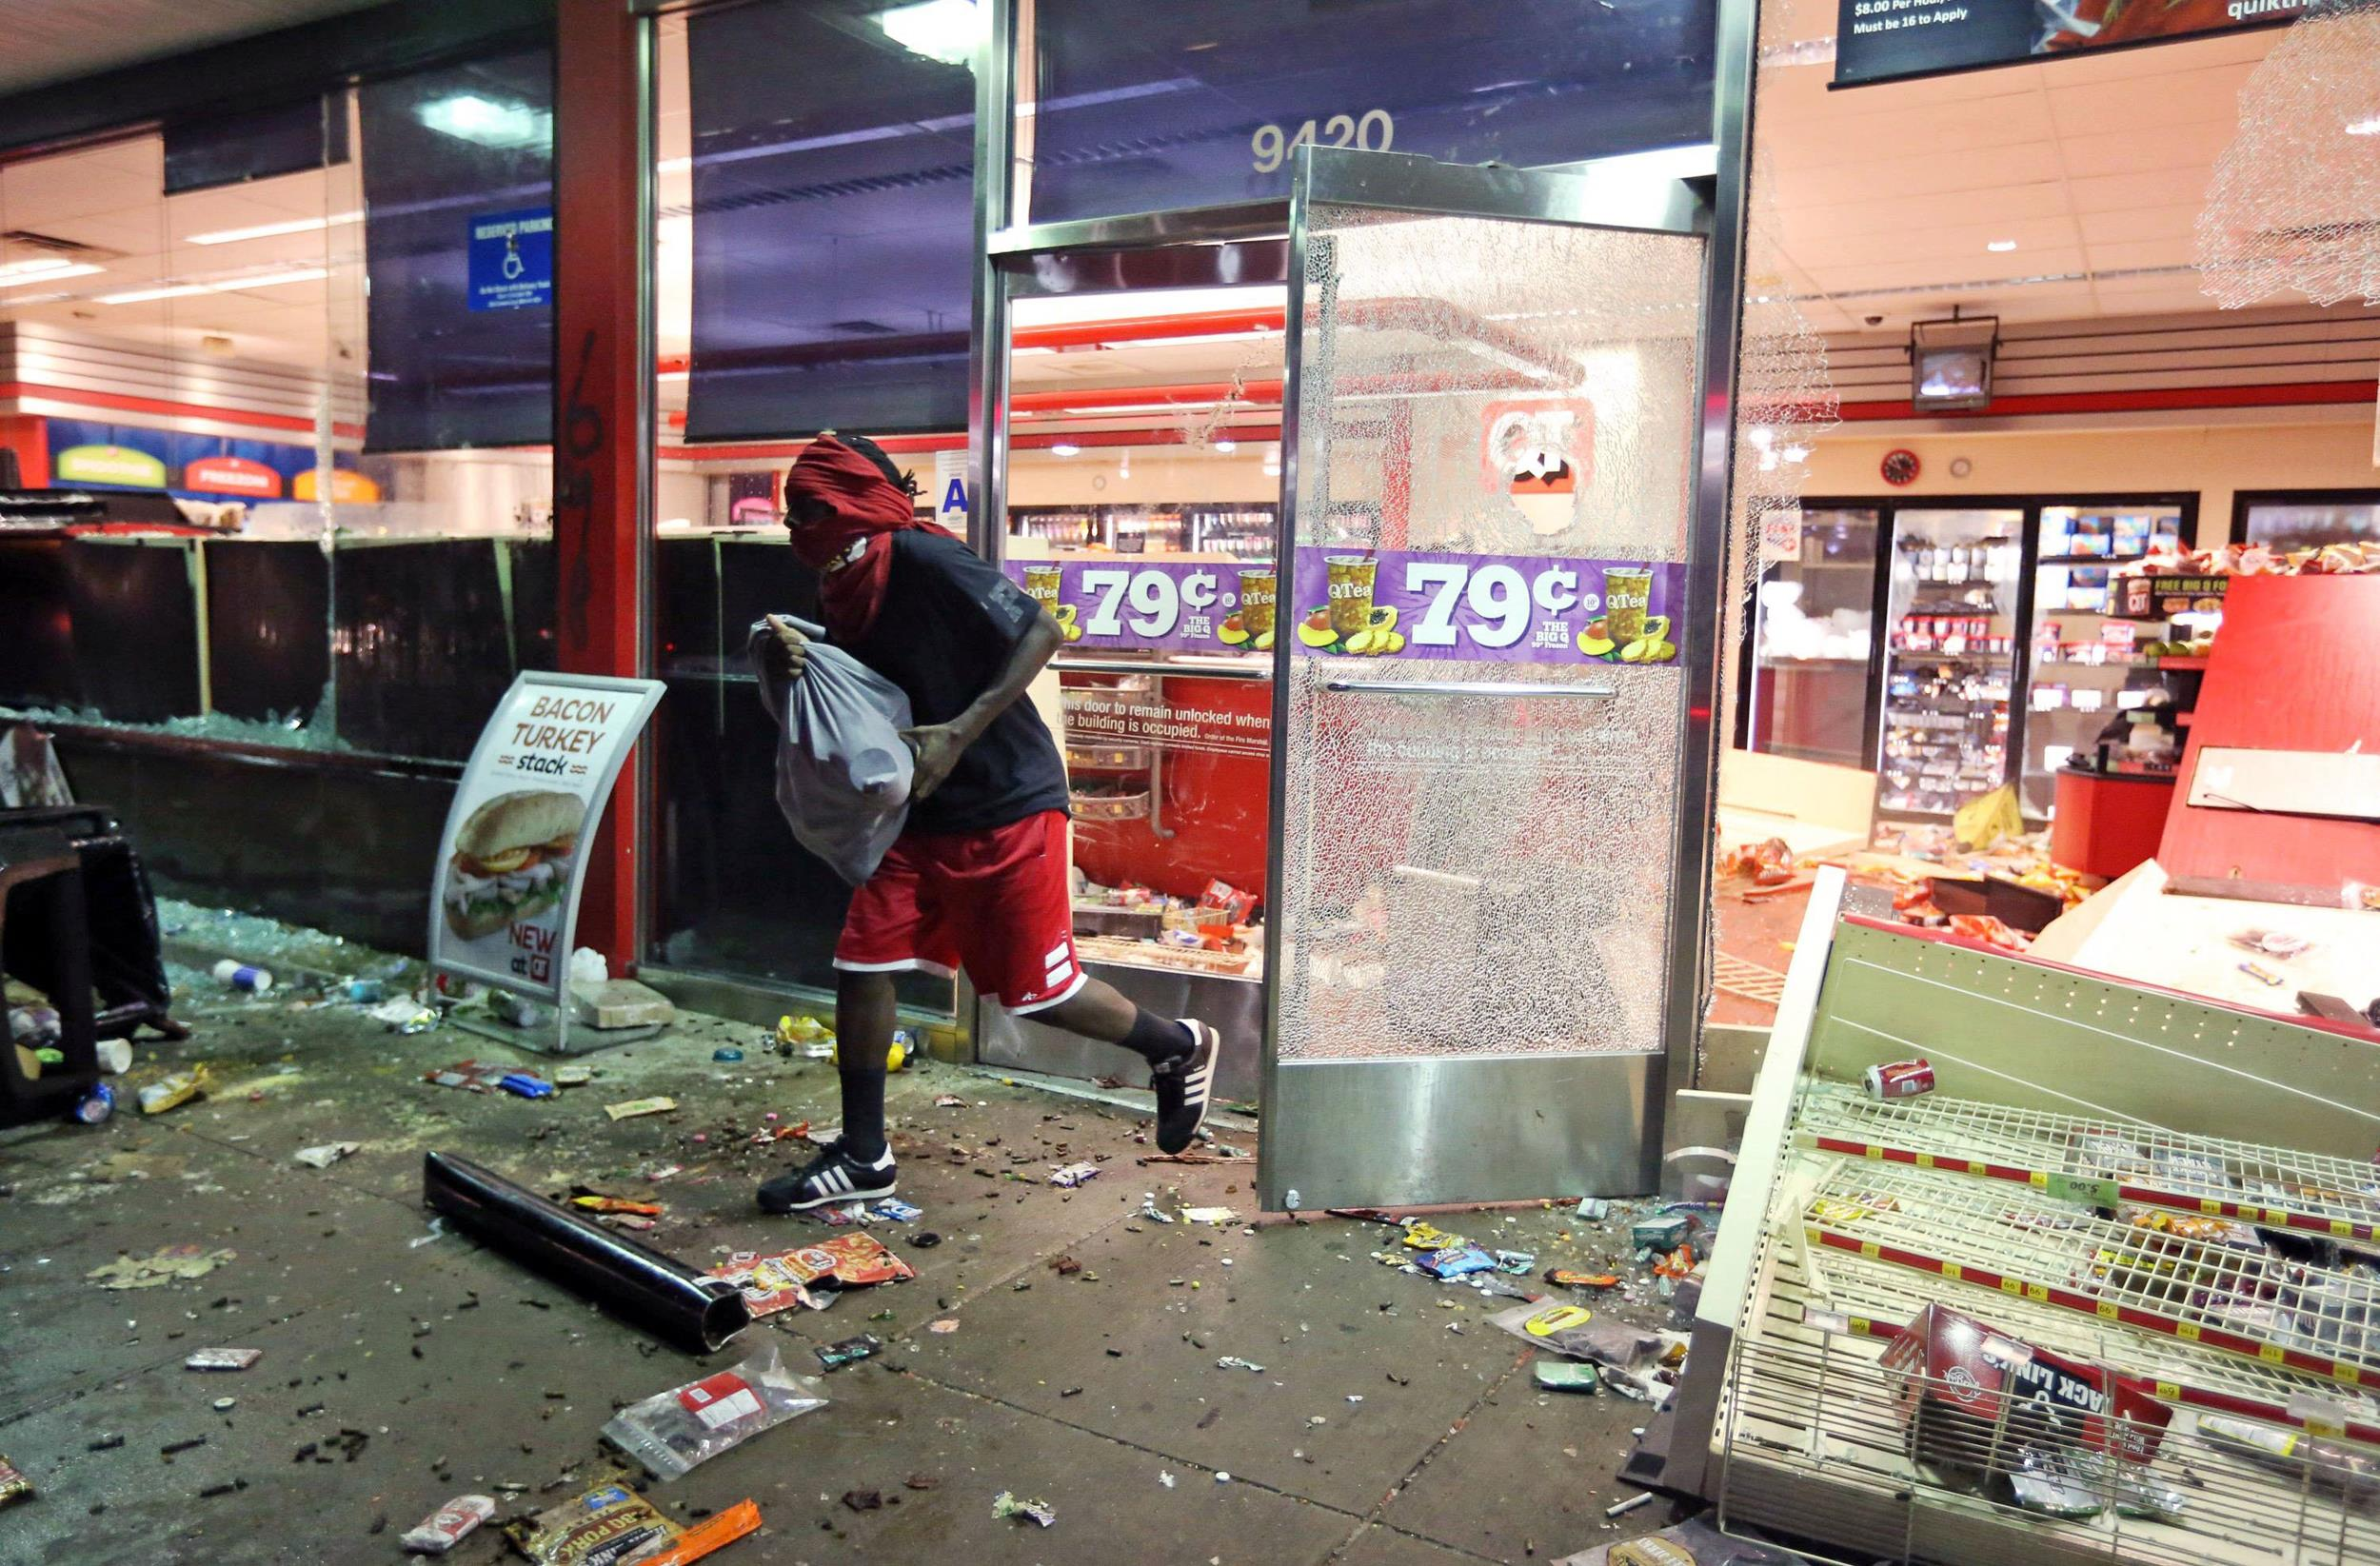 Image: A man leaves a store on Sunday, Aug. 10, 2014, in Ferguson, Mo.